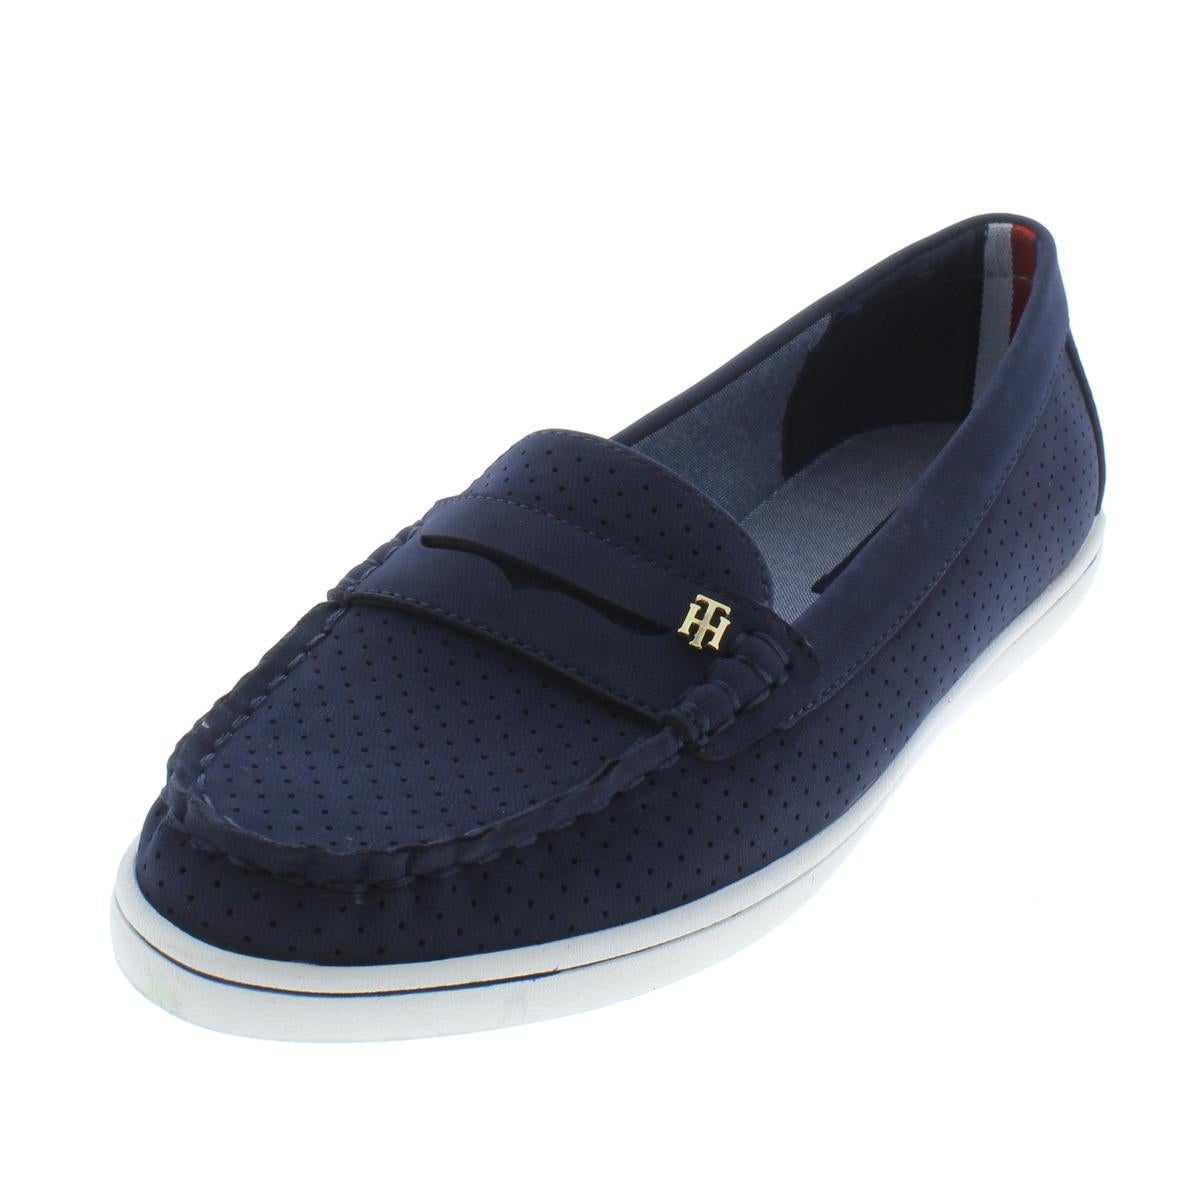 21d93d4d5c7e3c Shop Tommy Hilfiger Womens Butter5 Boat Shoes Perforated Close Toe - Free  Shipping On Orders Over  45 - Overstock - 21027805